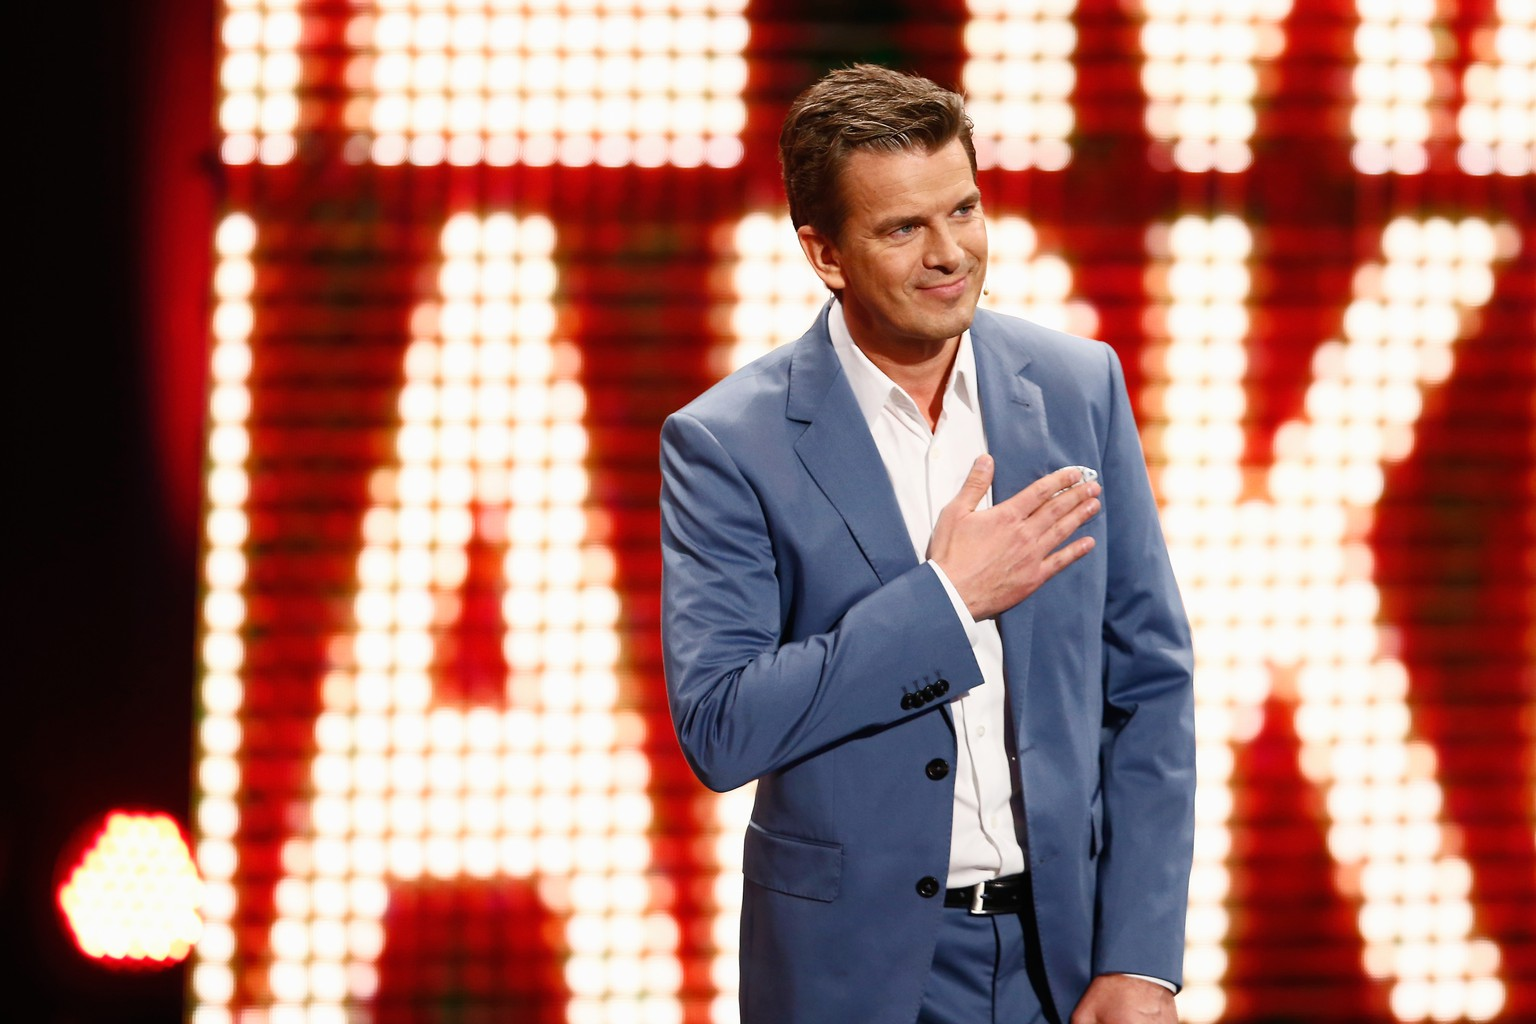 OFFENBURG, GERMANY - APRIL 05:  Markus Lanz talks on stage during the 'Wetten, dass..?' tv show on April 5, 2014 in Offenburg, Germany.  (Photo by Andreas Rentz/Getty Images)